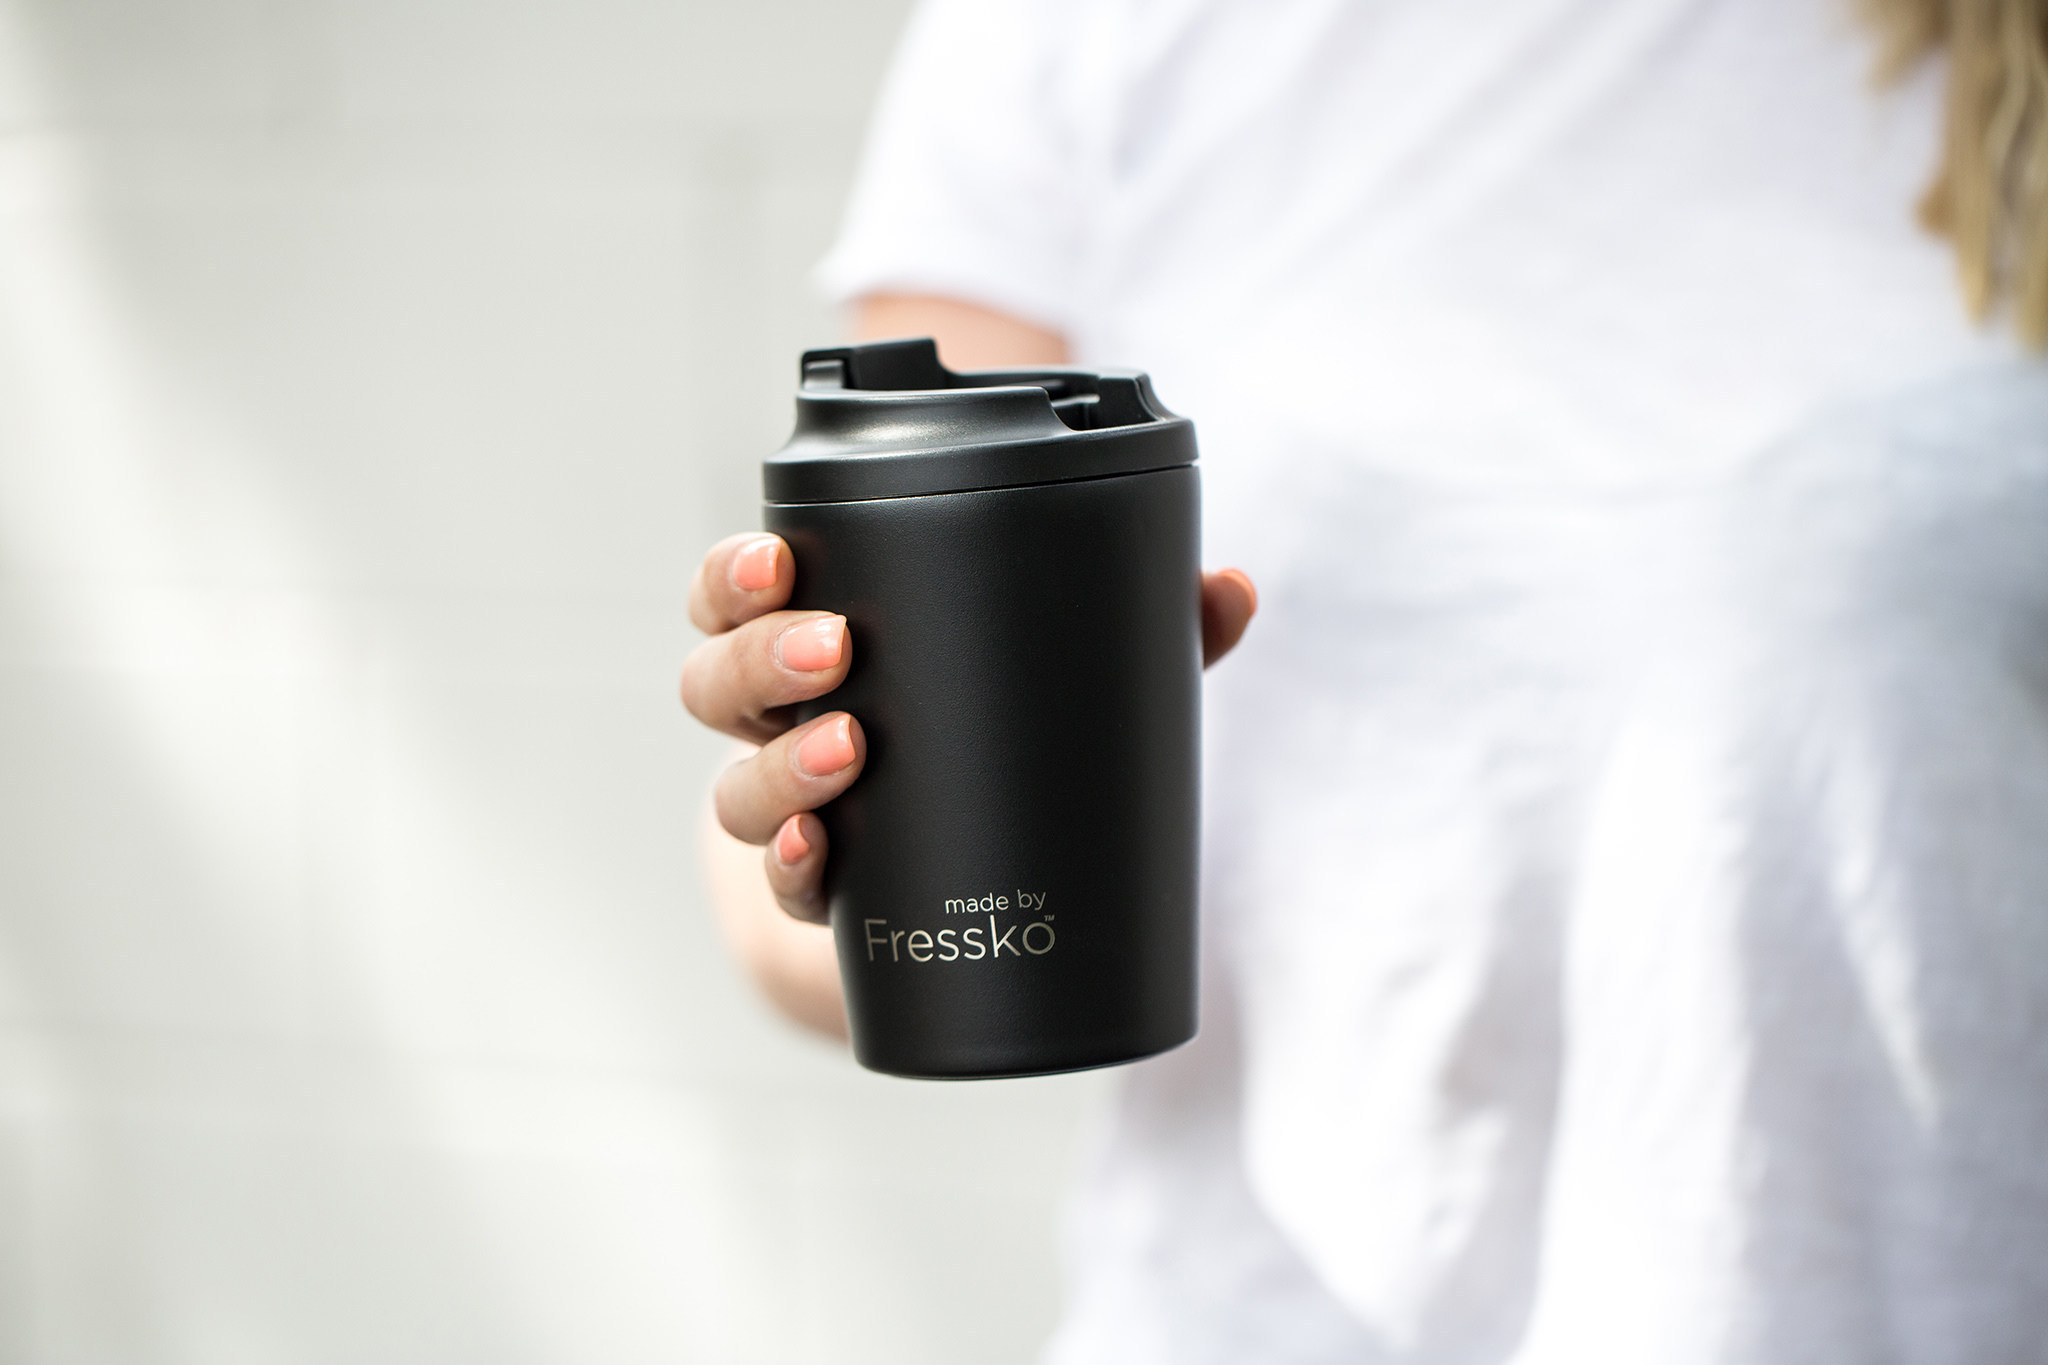 The Camino - A New Coffee Cup by Fressko